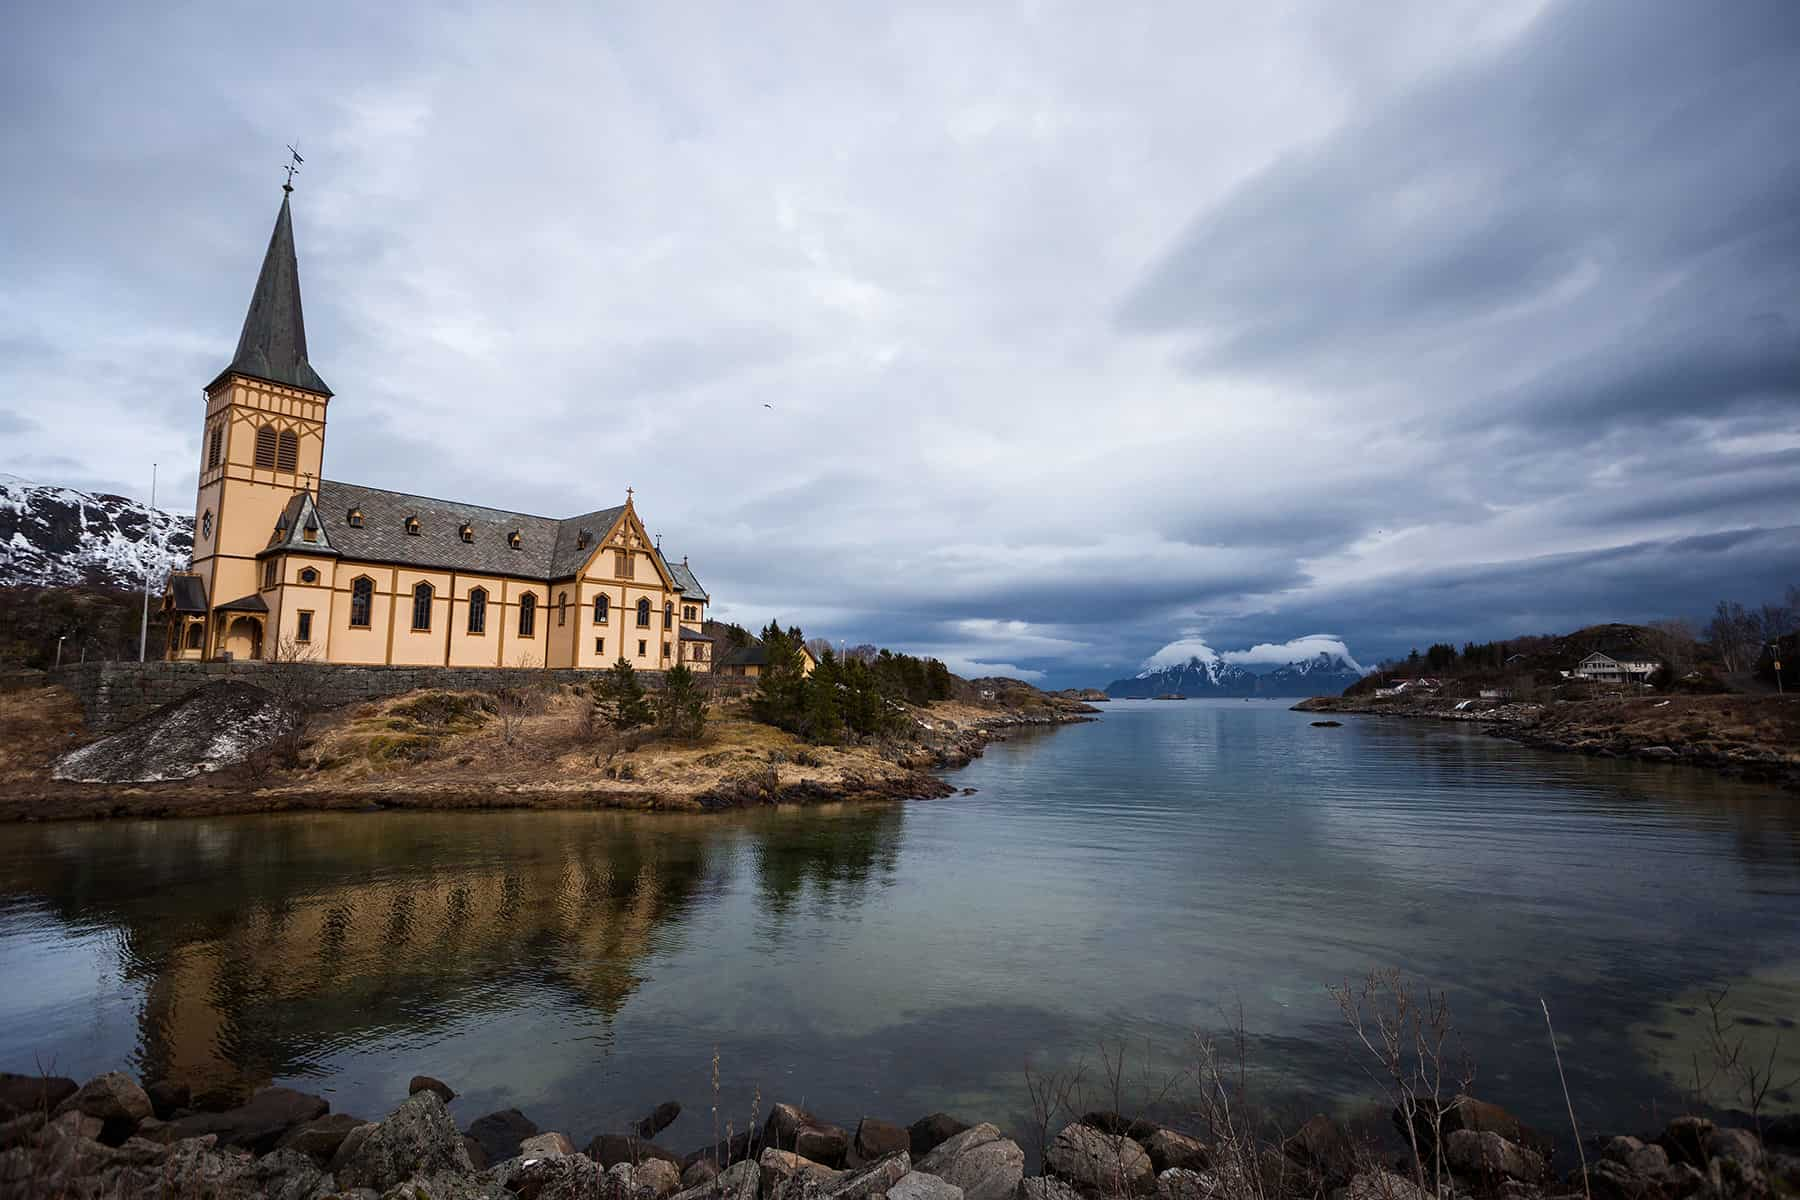 The main attraction of Kabelvåg is the picturesque Lofoten cathedral.